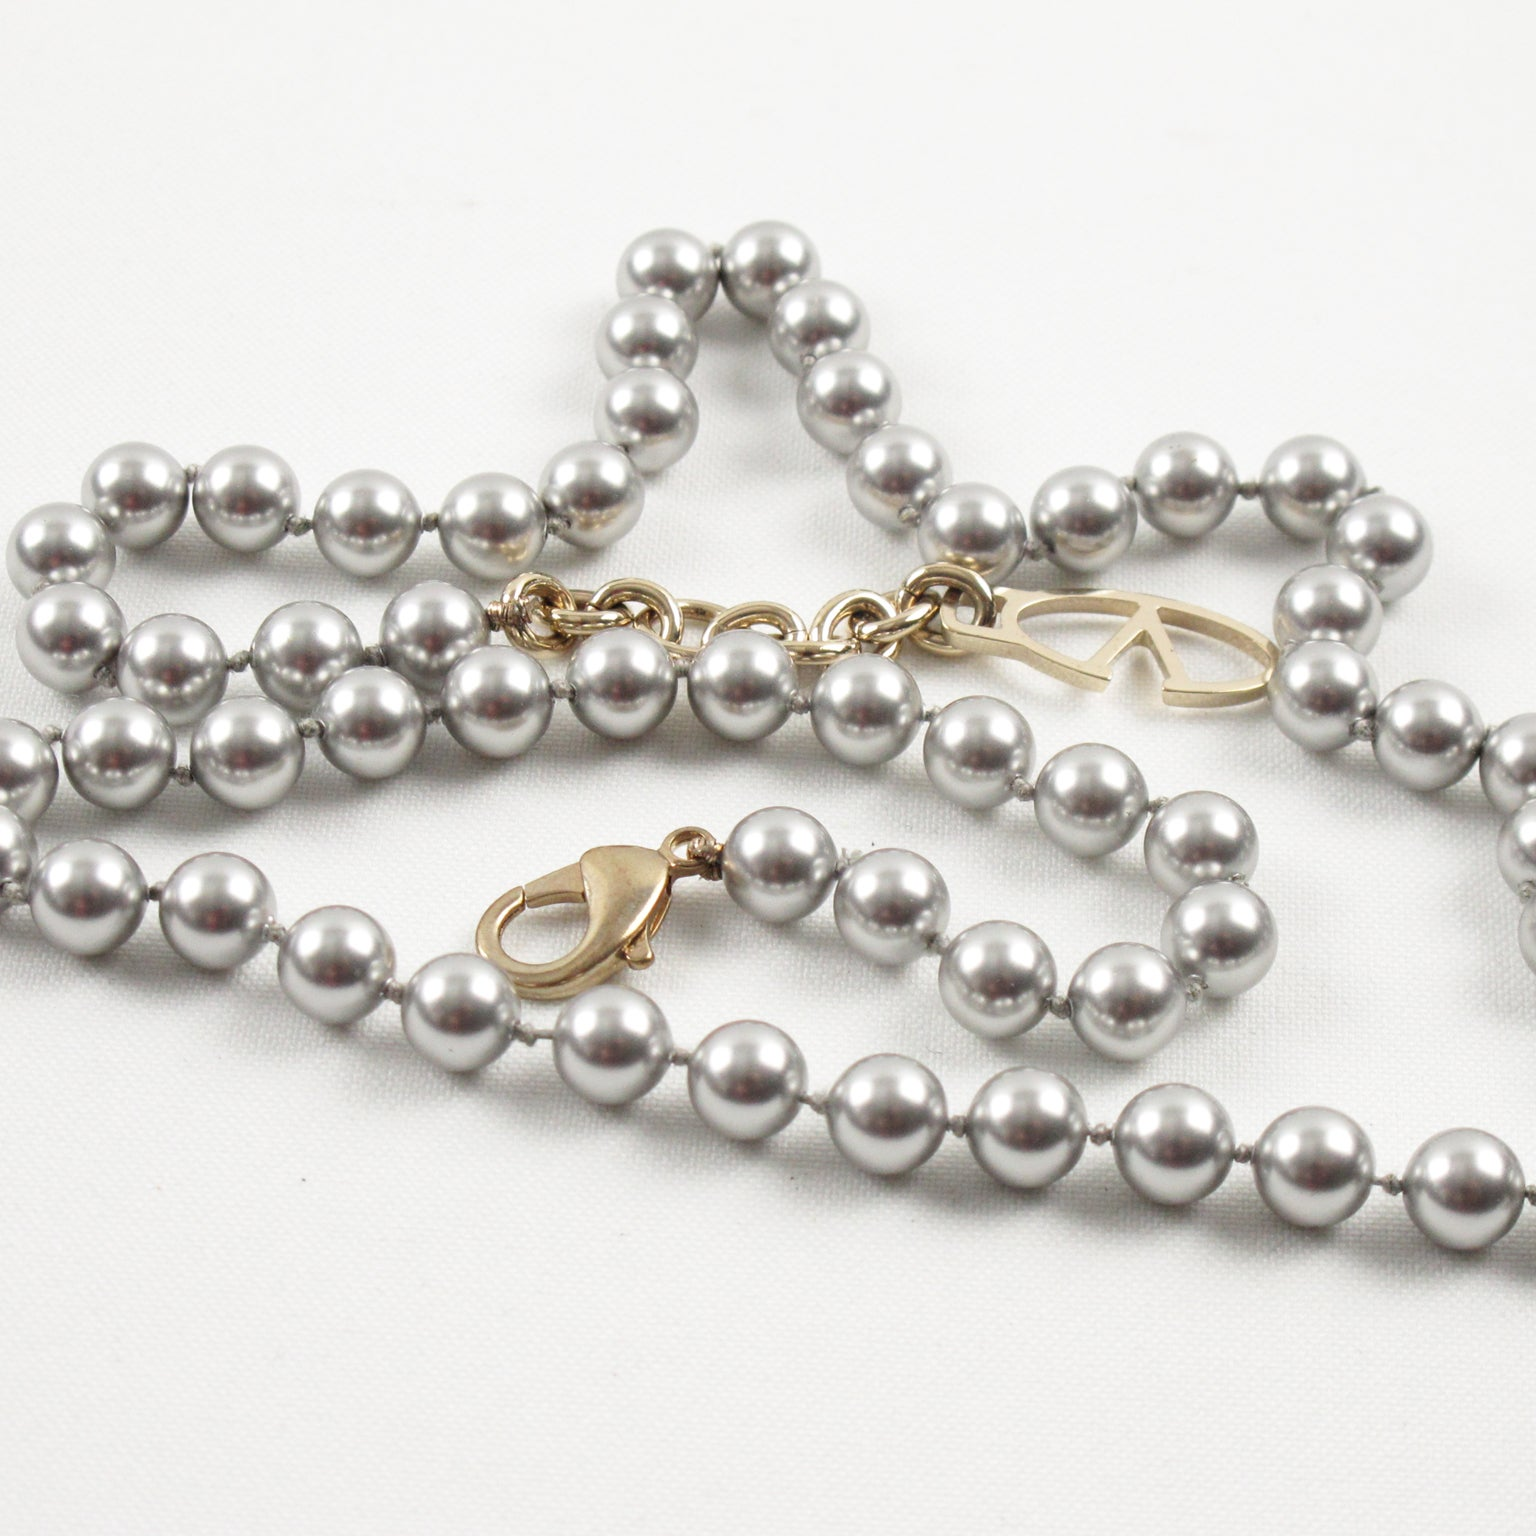 faccf555e Valentino Signed Gray Pearl-like Necklace Large Geometric Pendant at 1stdibs